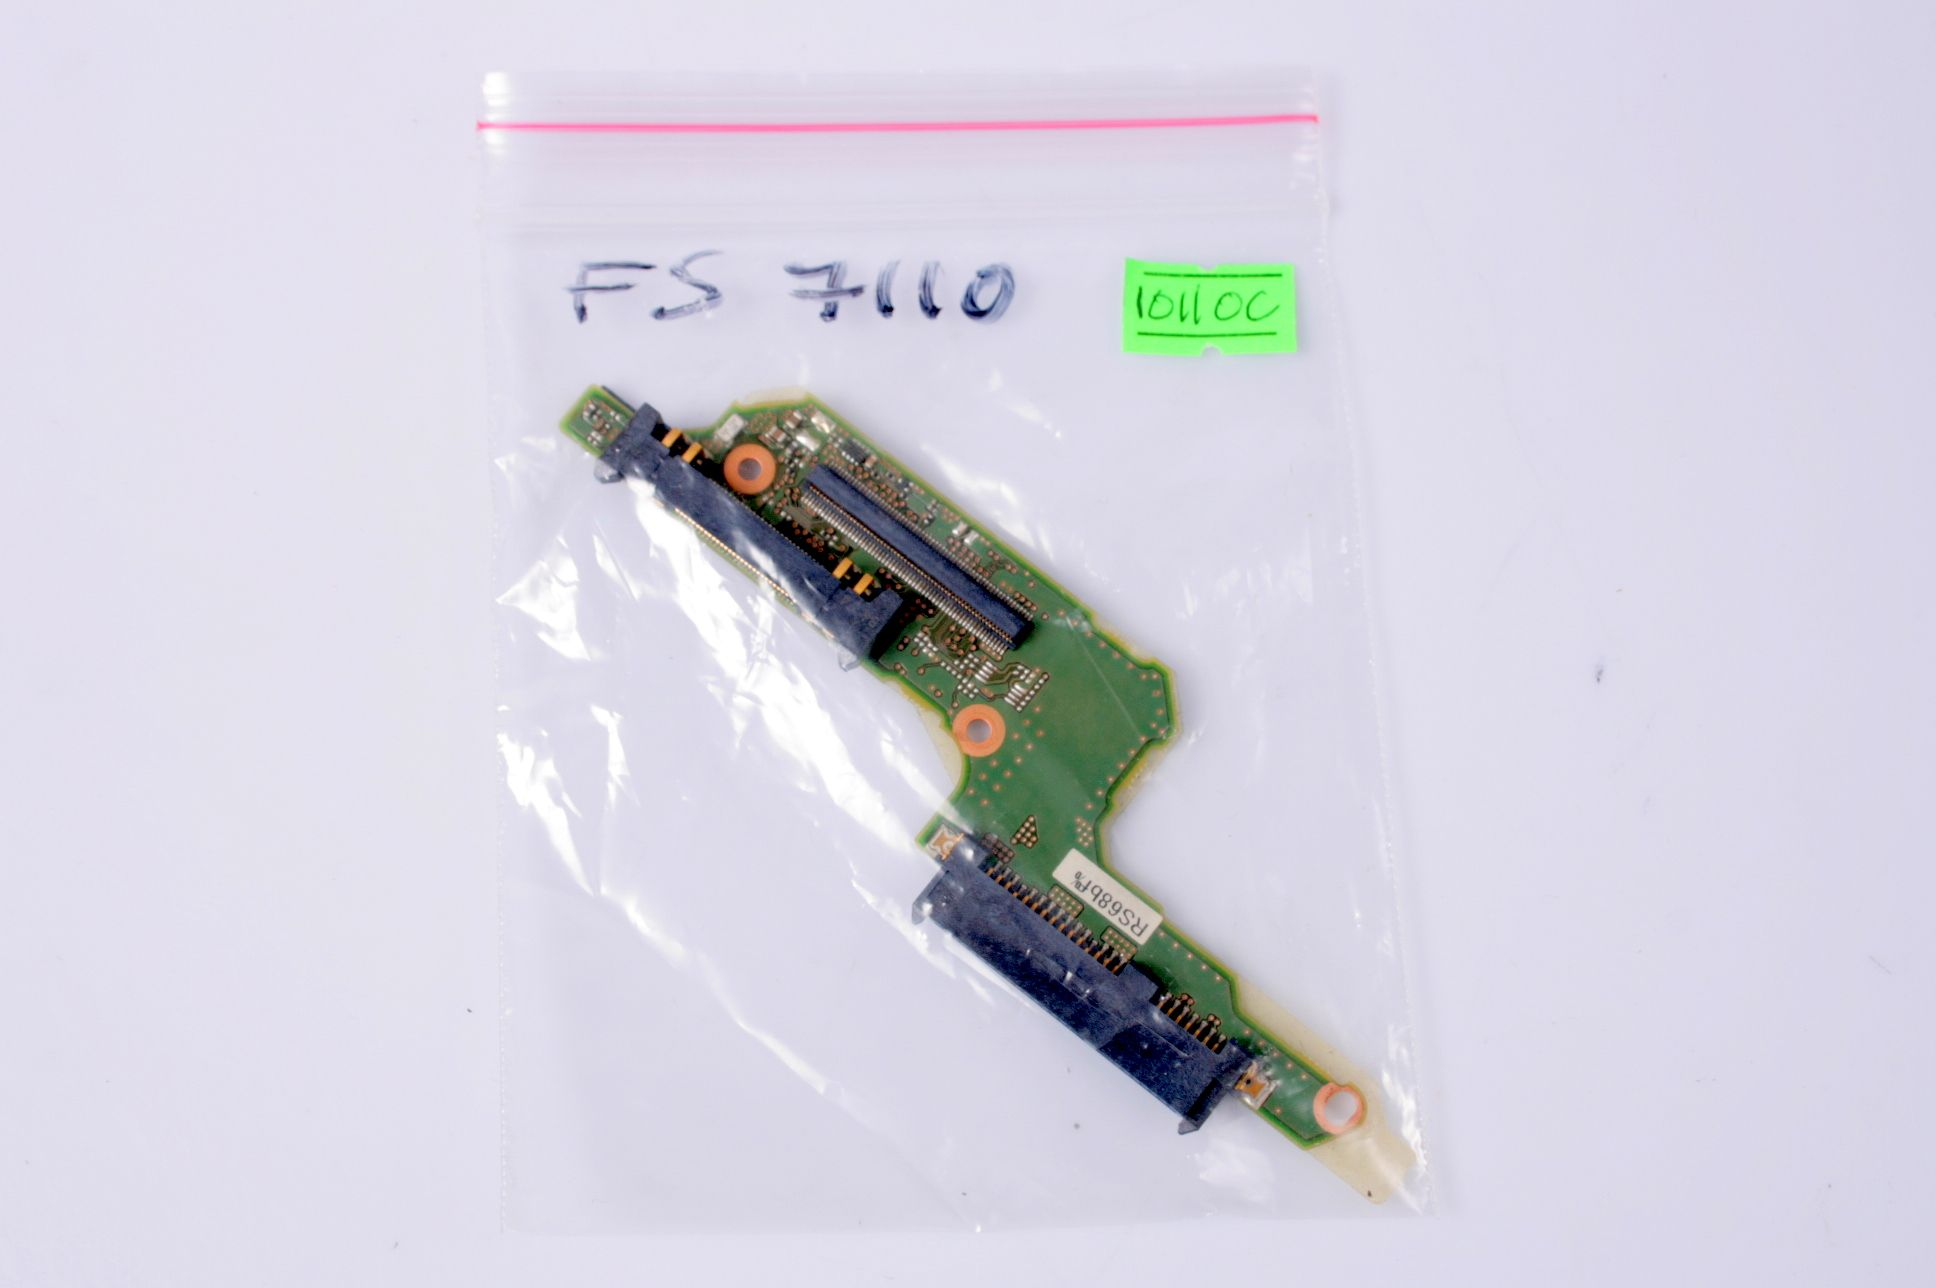 Fujitsu Lifebook S7110 HDD/CD Connector Board CP284416-01